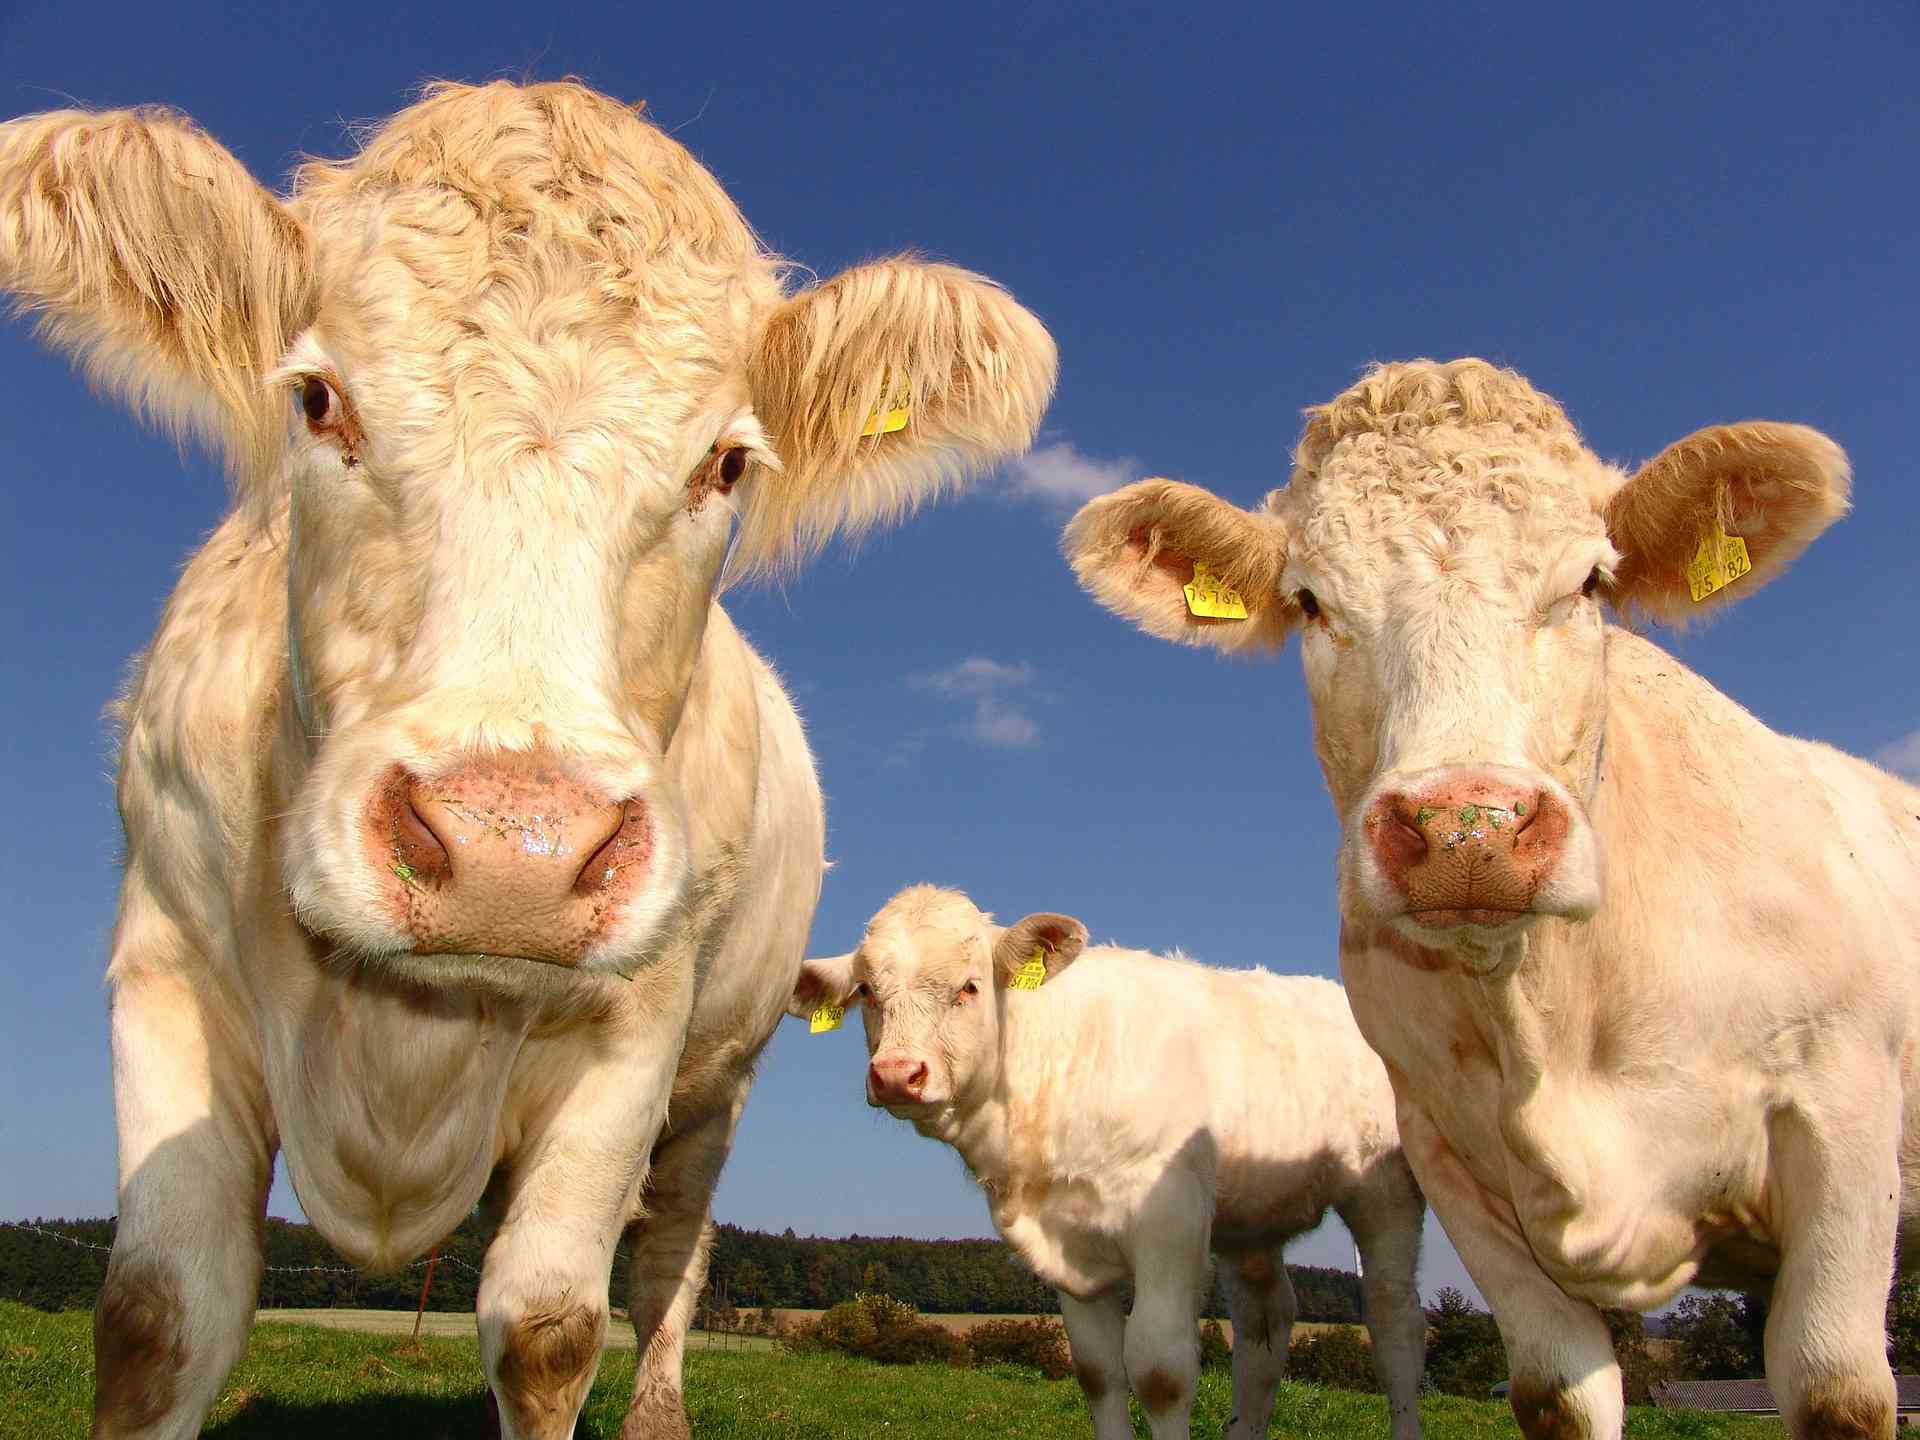 Close up of white cows on a farm looking at the camera.